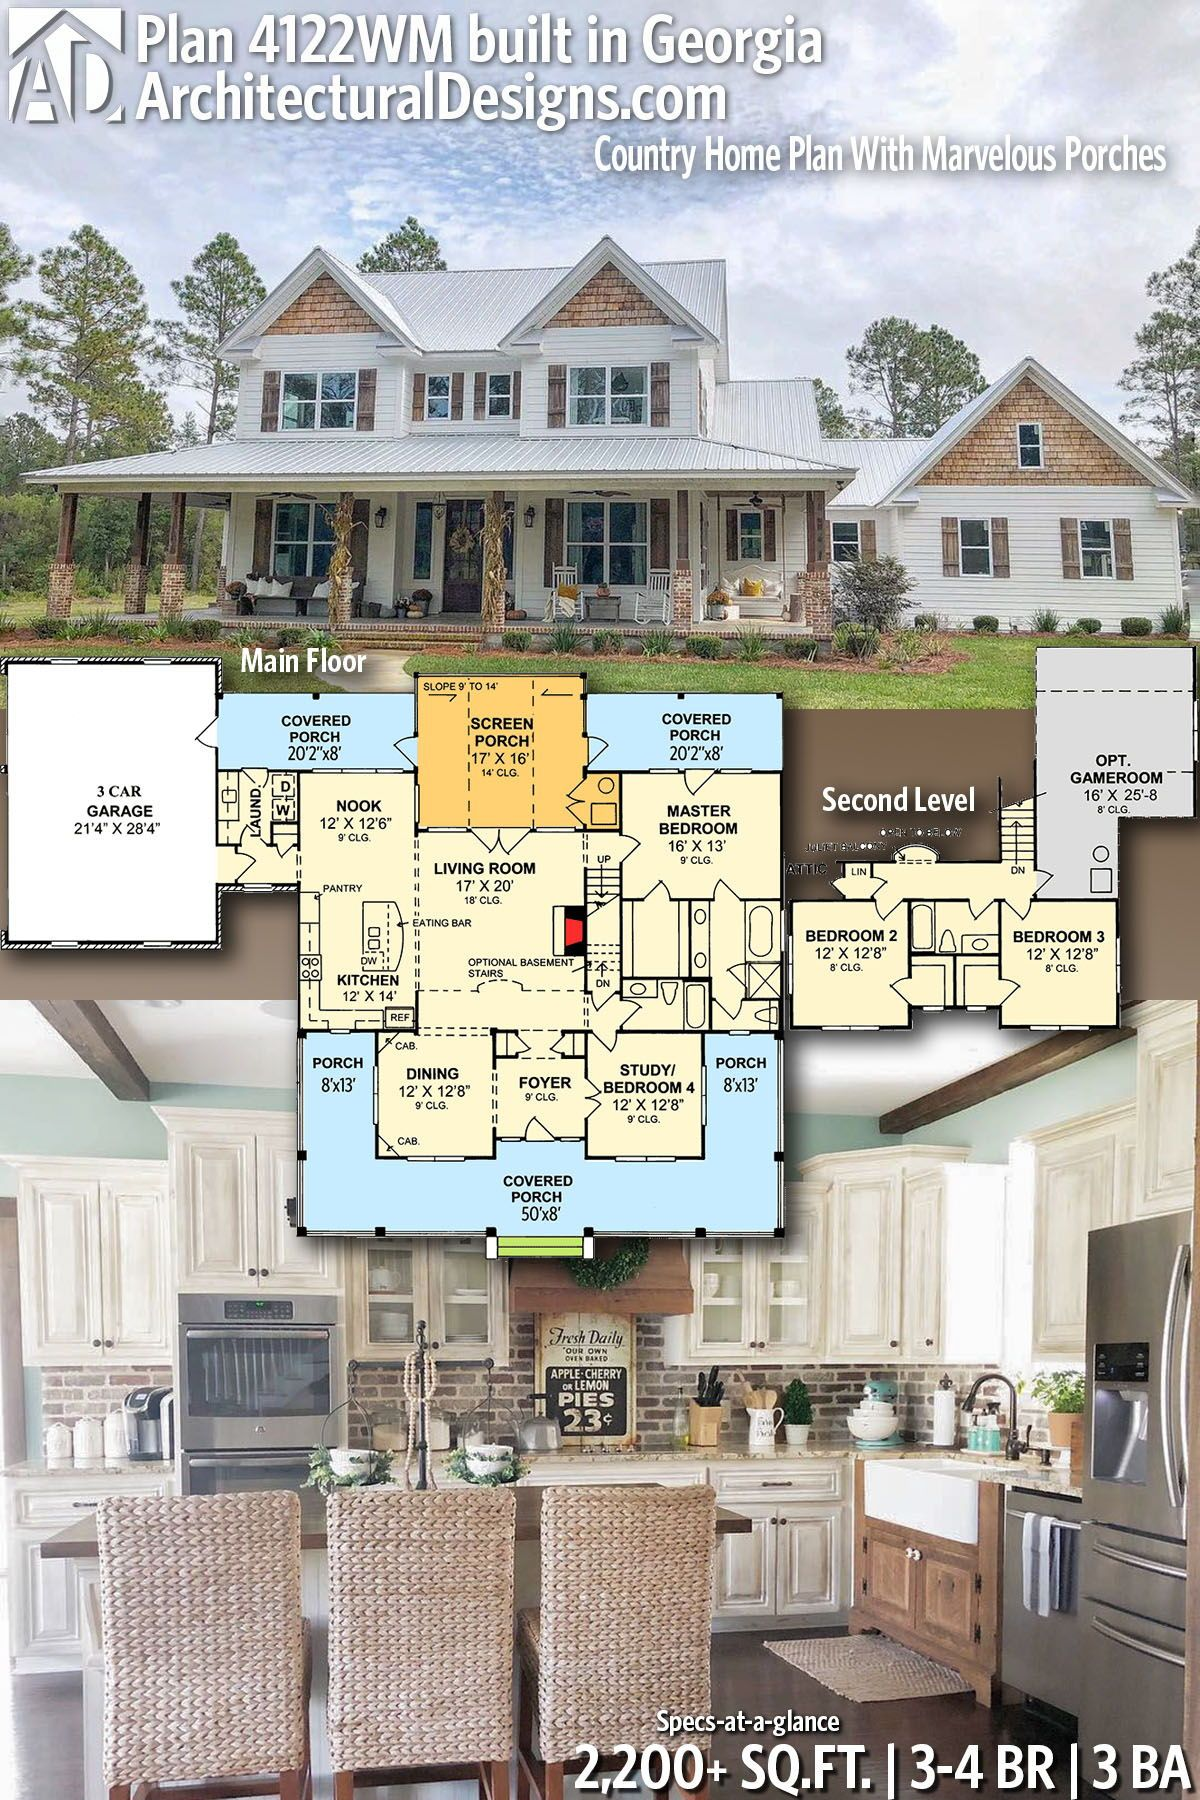 Architectural designs farmhouse plan wm built in georgia it gives you bedrooms baths and sq ft ready when are also most popular ways to master bedroom design layout floor plans rh pinterest